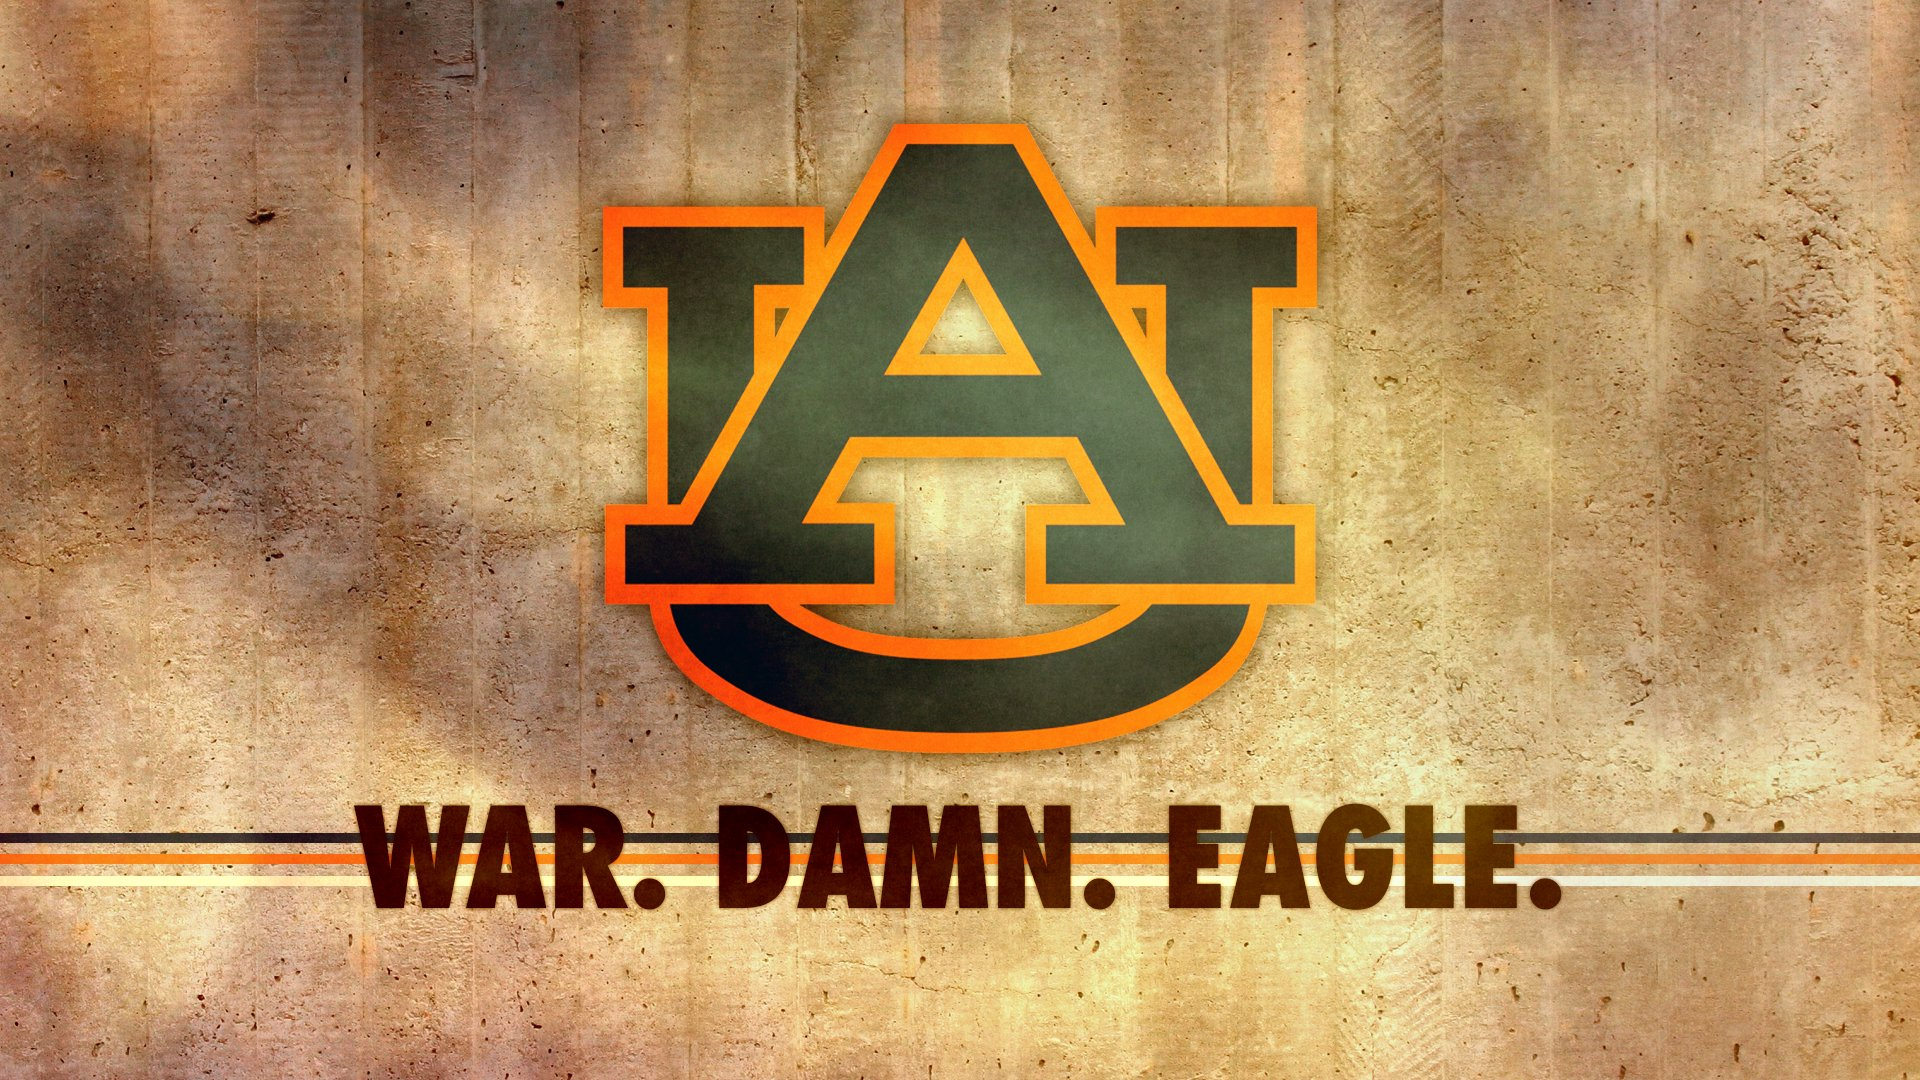 Auburn Revolving Wallpaper  Android Apps on Google Play 1920x1080